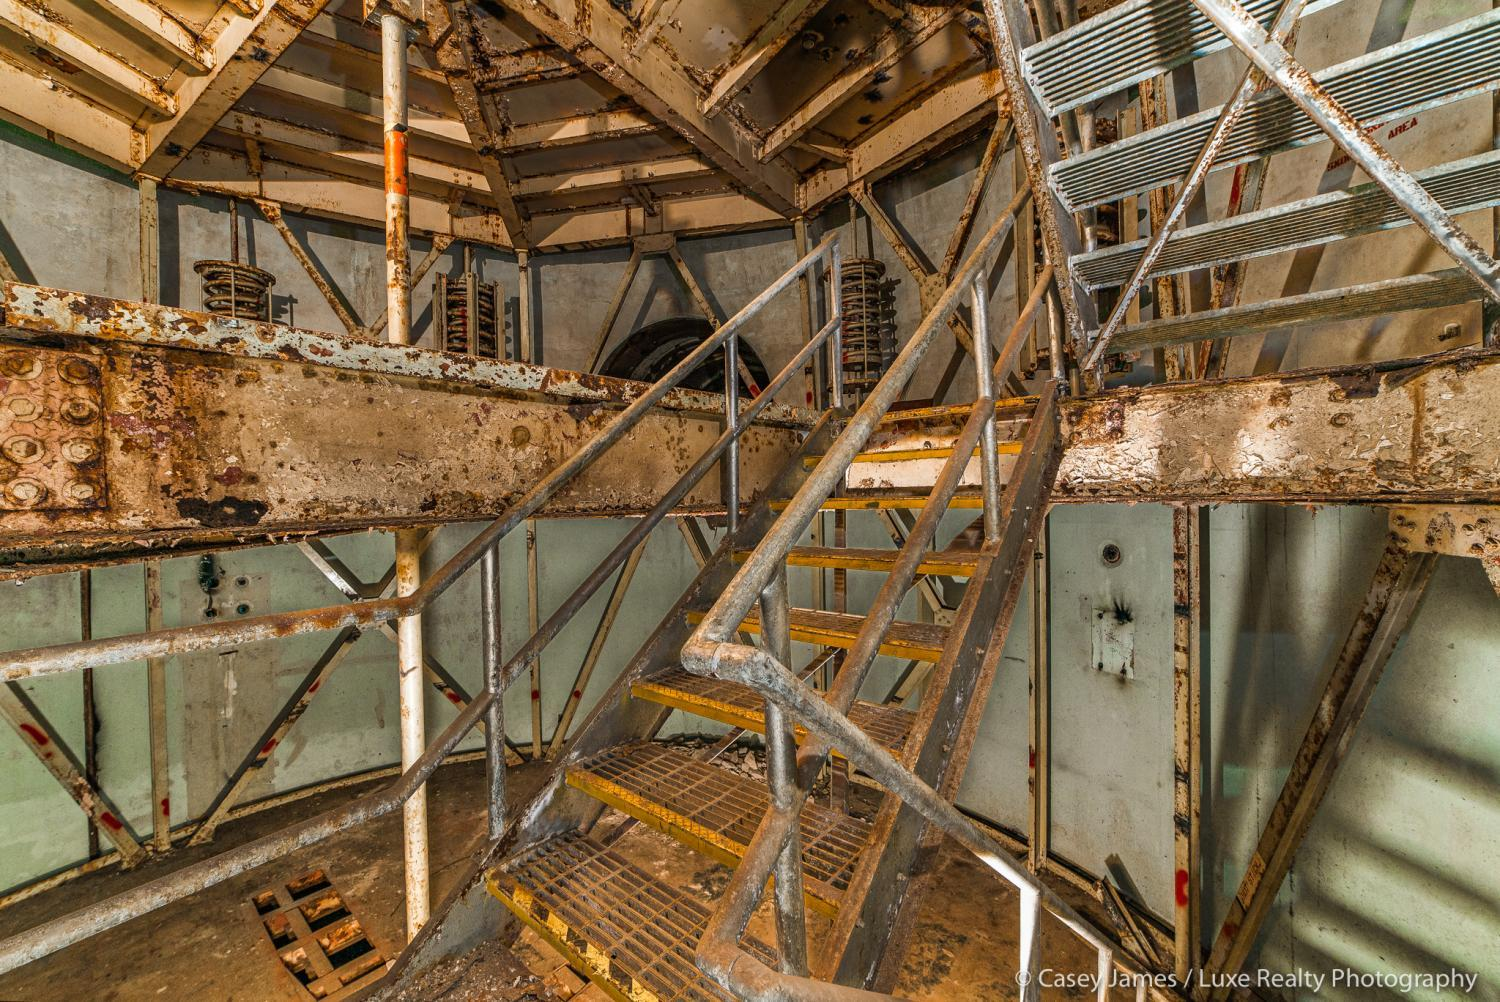 decommissioned subterranean missile complex